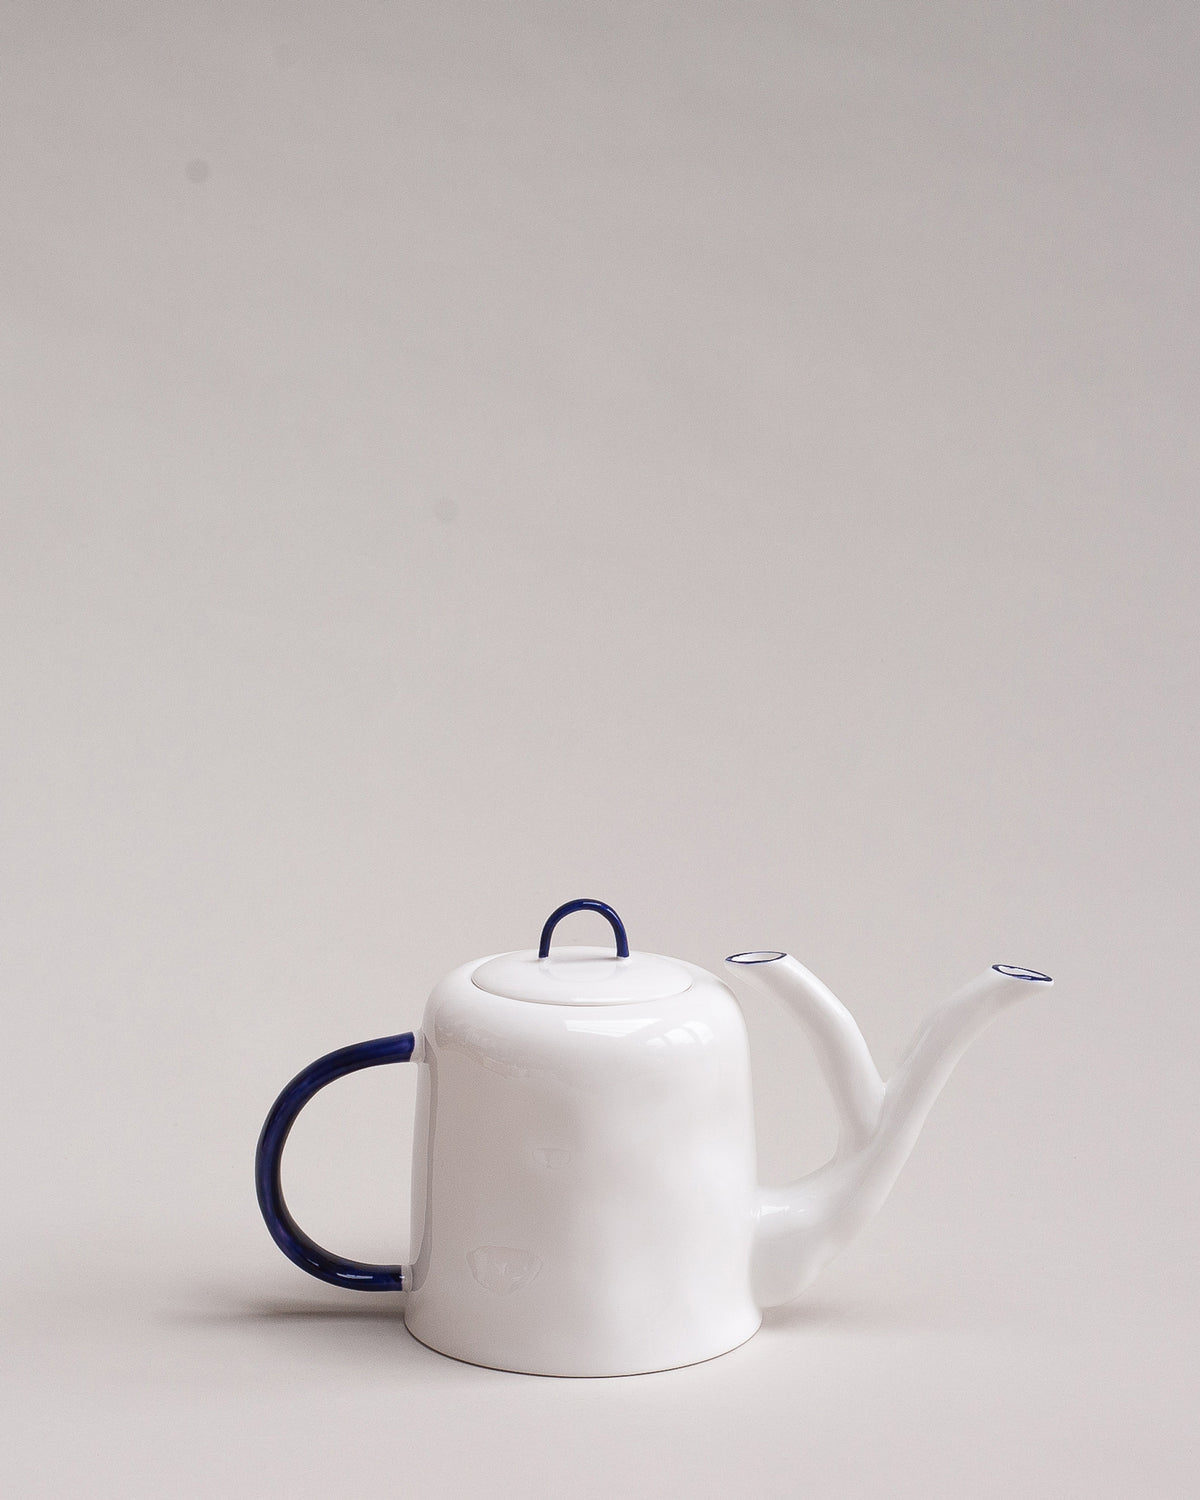 Surreal Teapot Nine